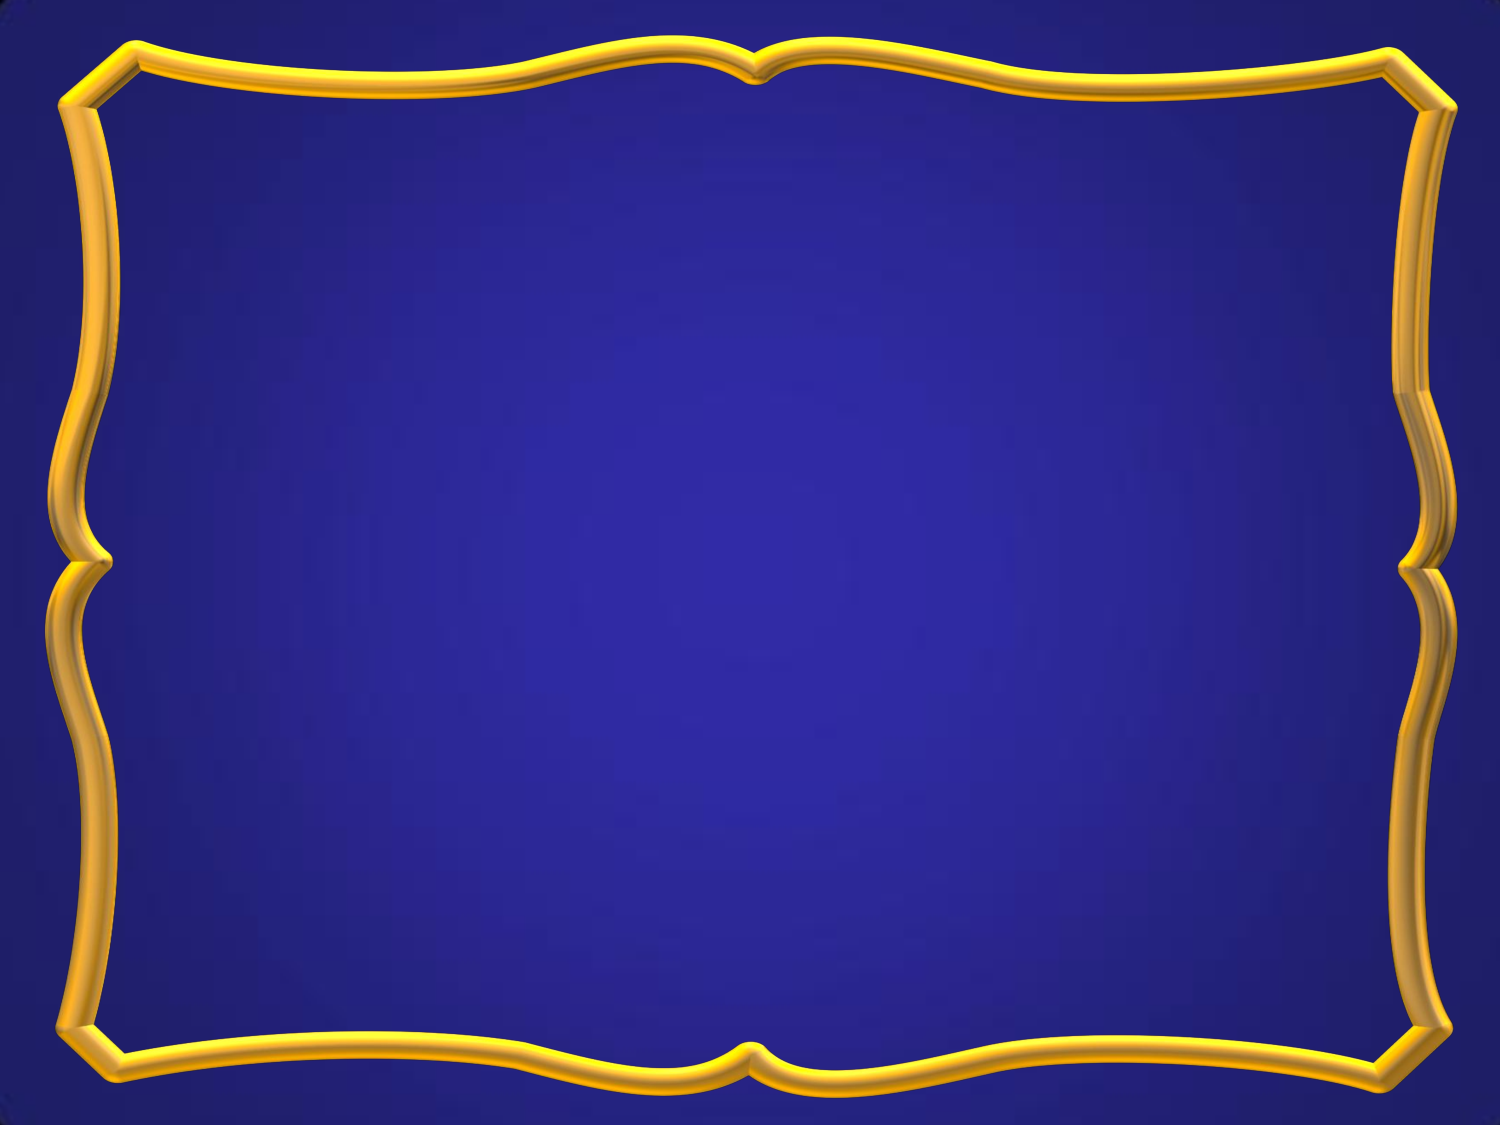 Blue And Gold PNG - 148385